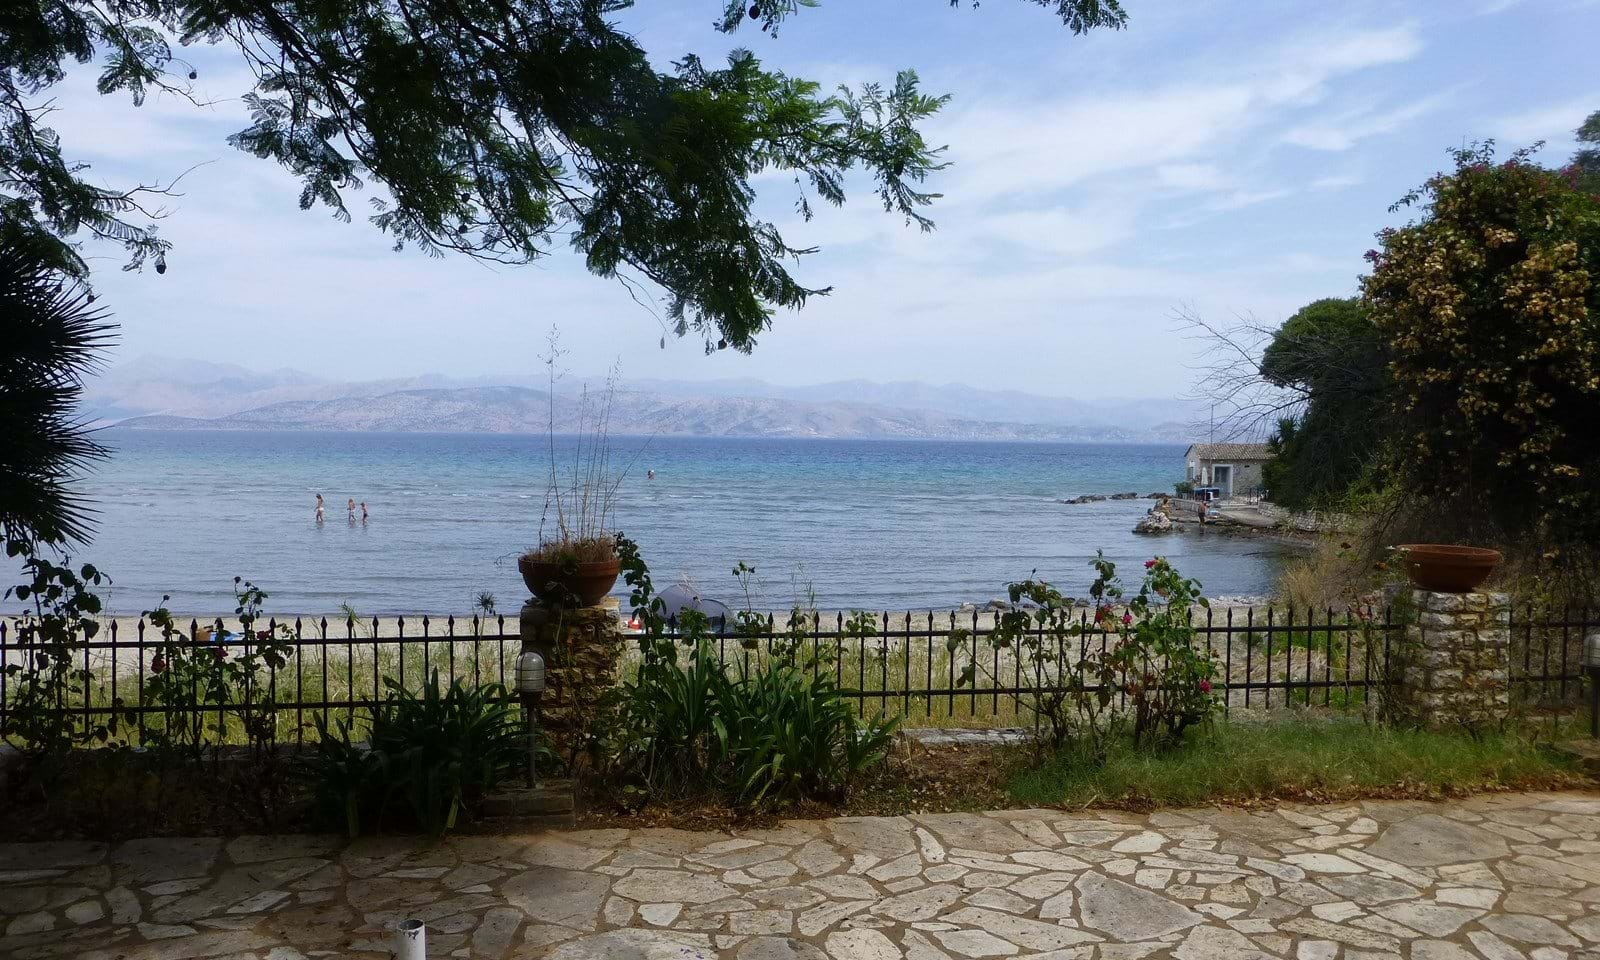 Property for sale on the beach in Corfu